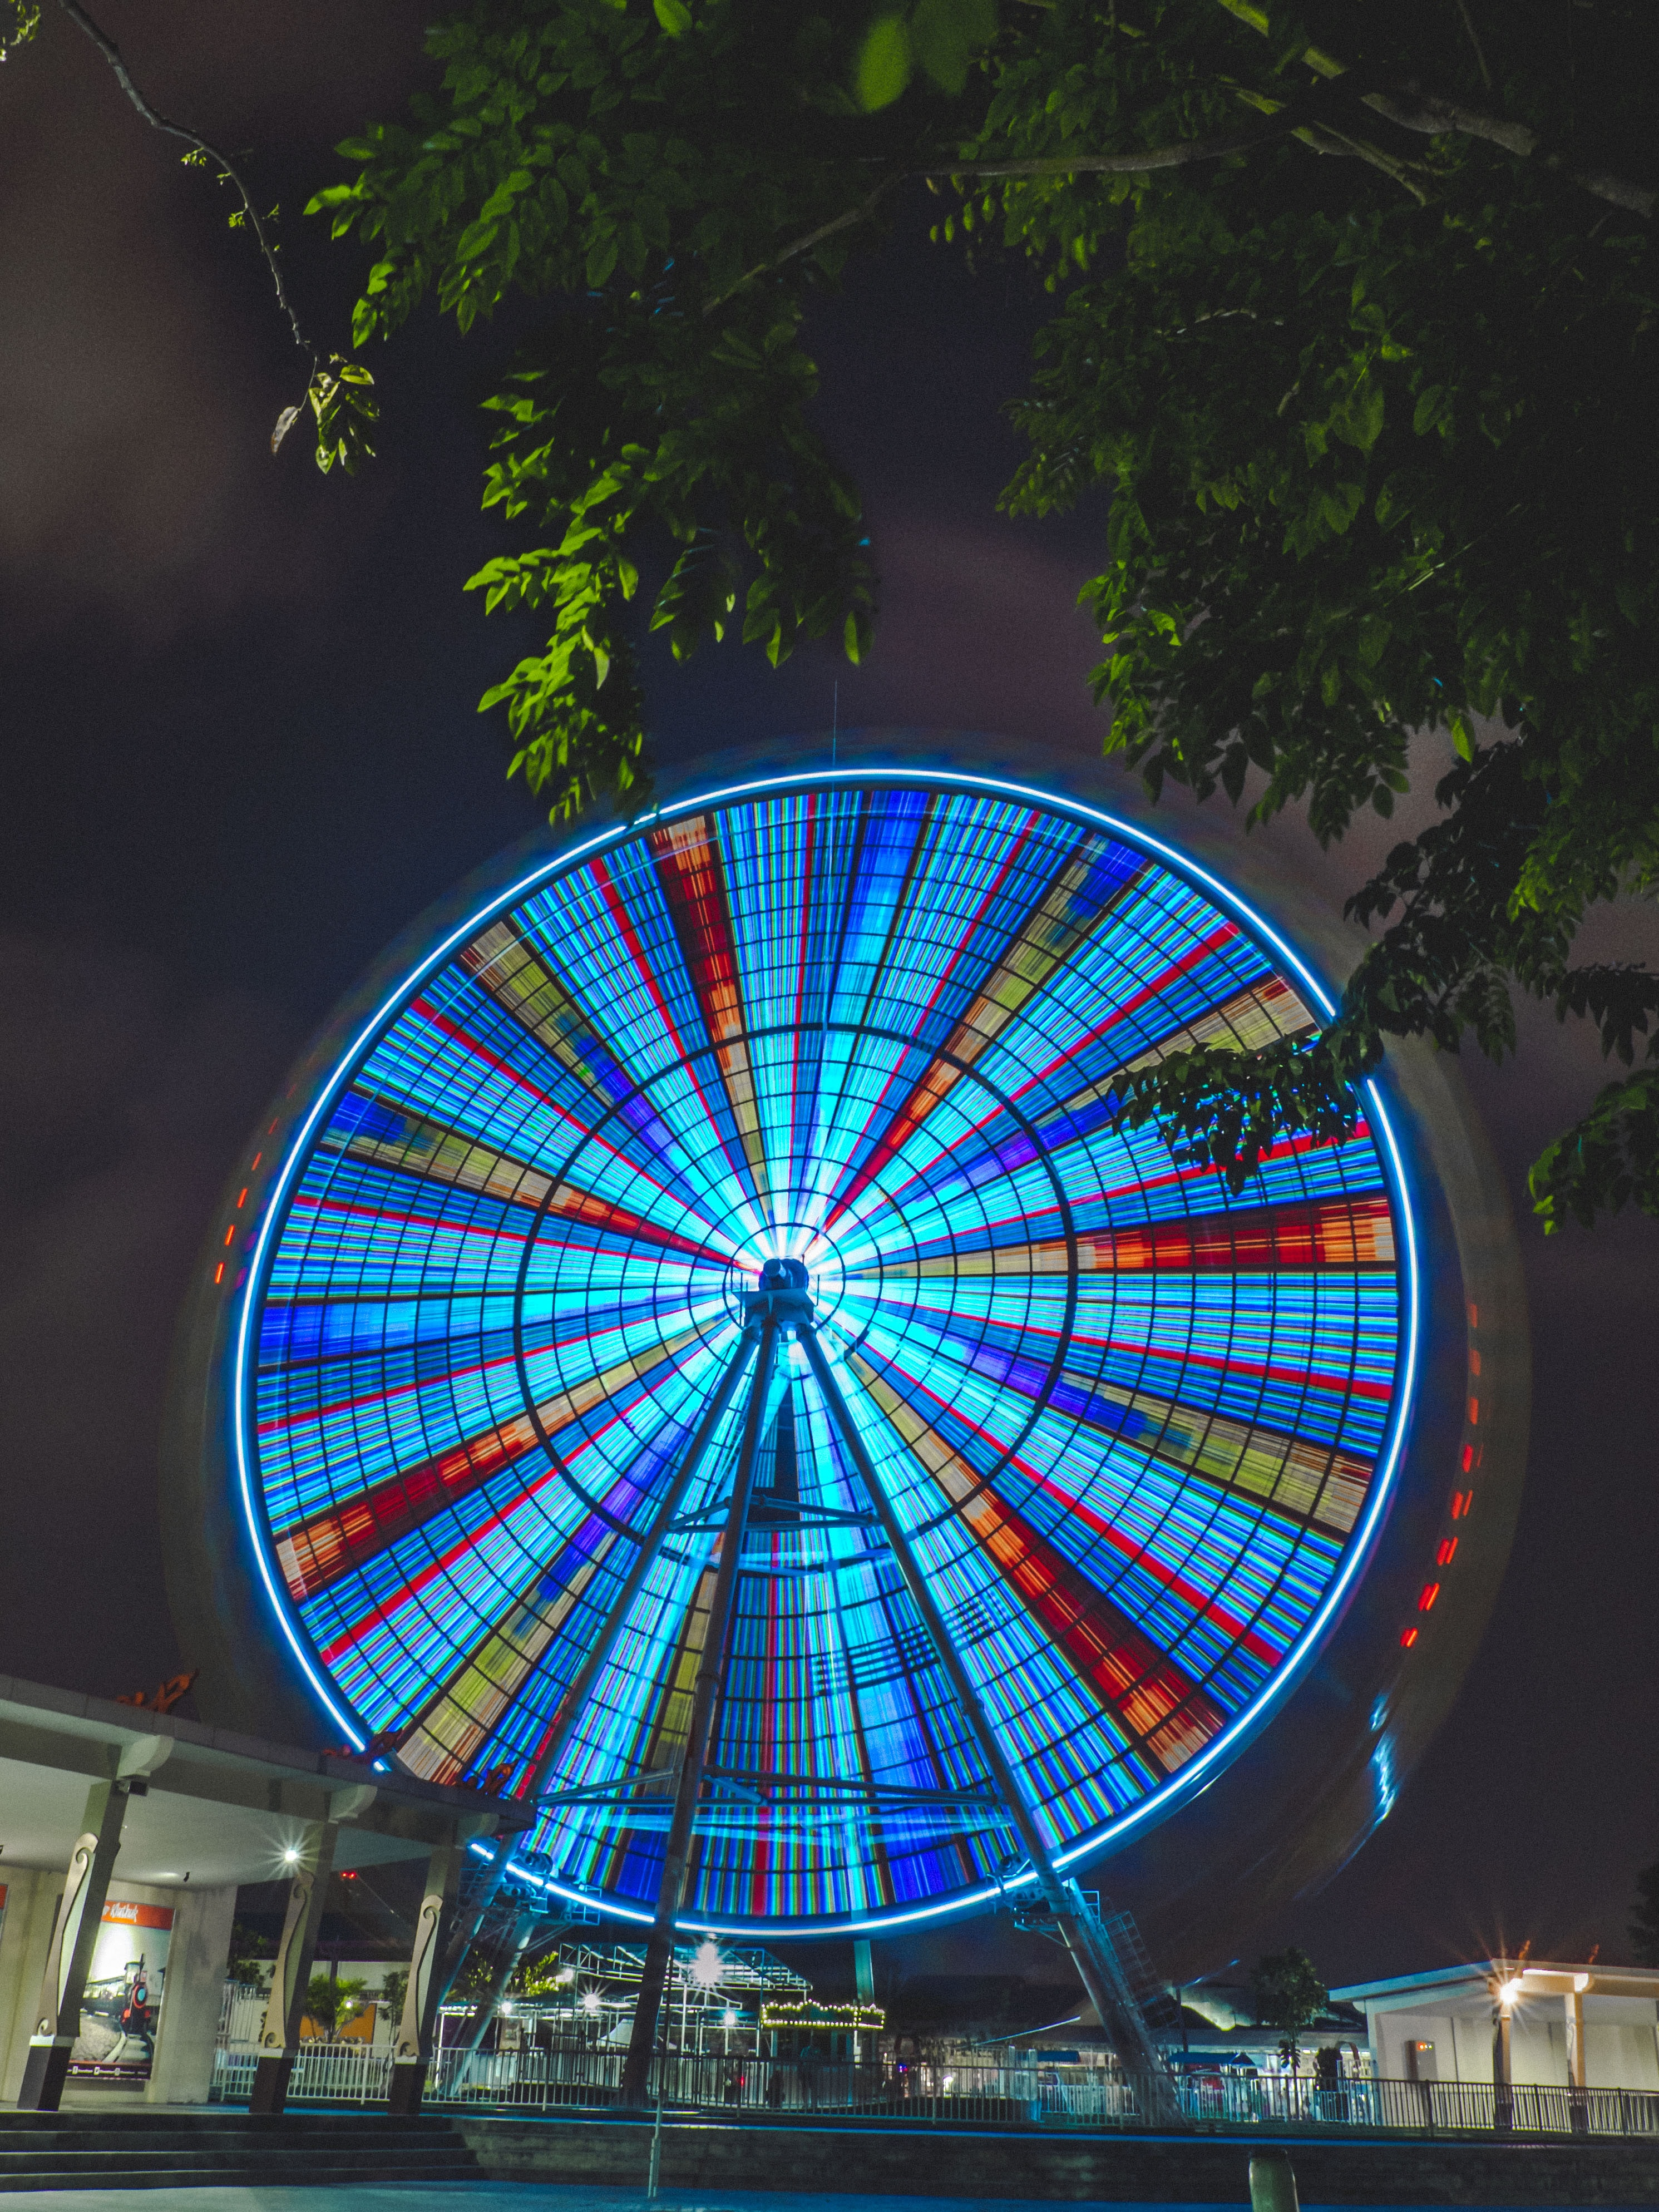 A bright and colorful ferris wheel spinning in circles in the middle of the night